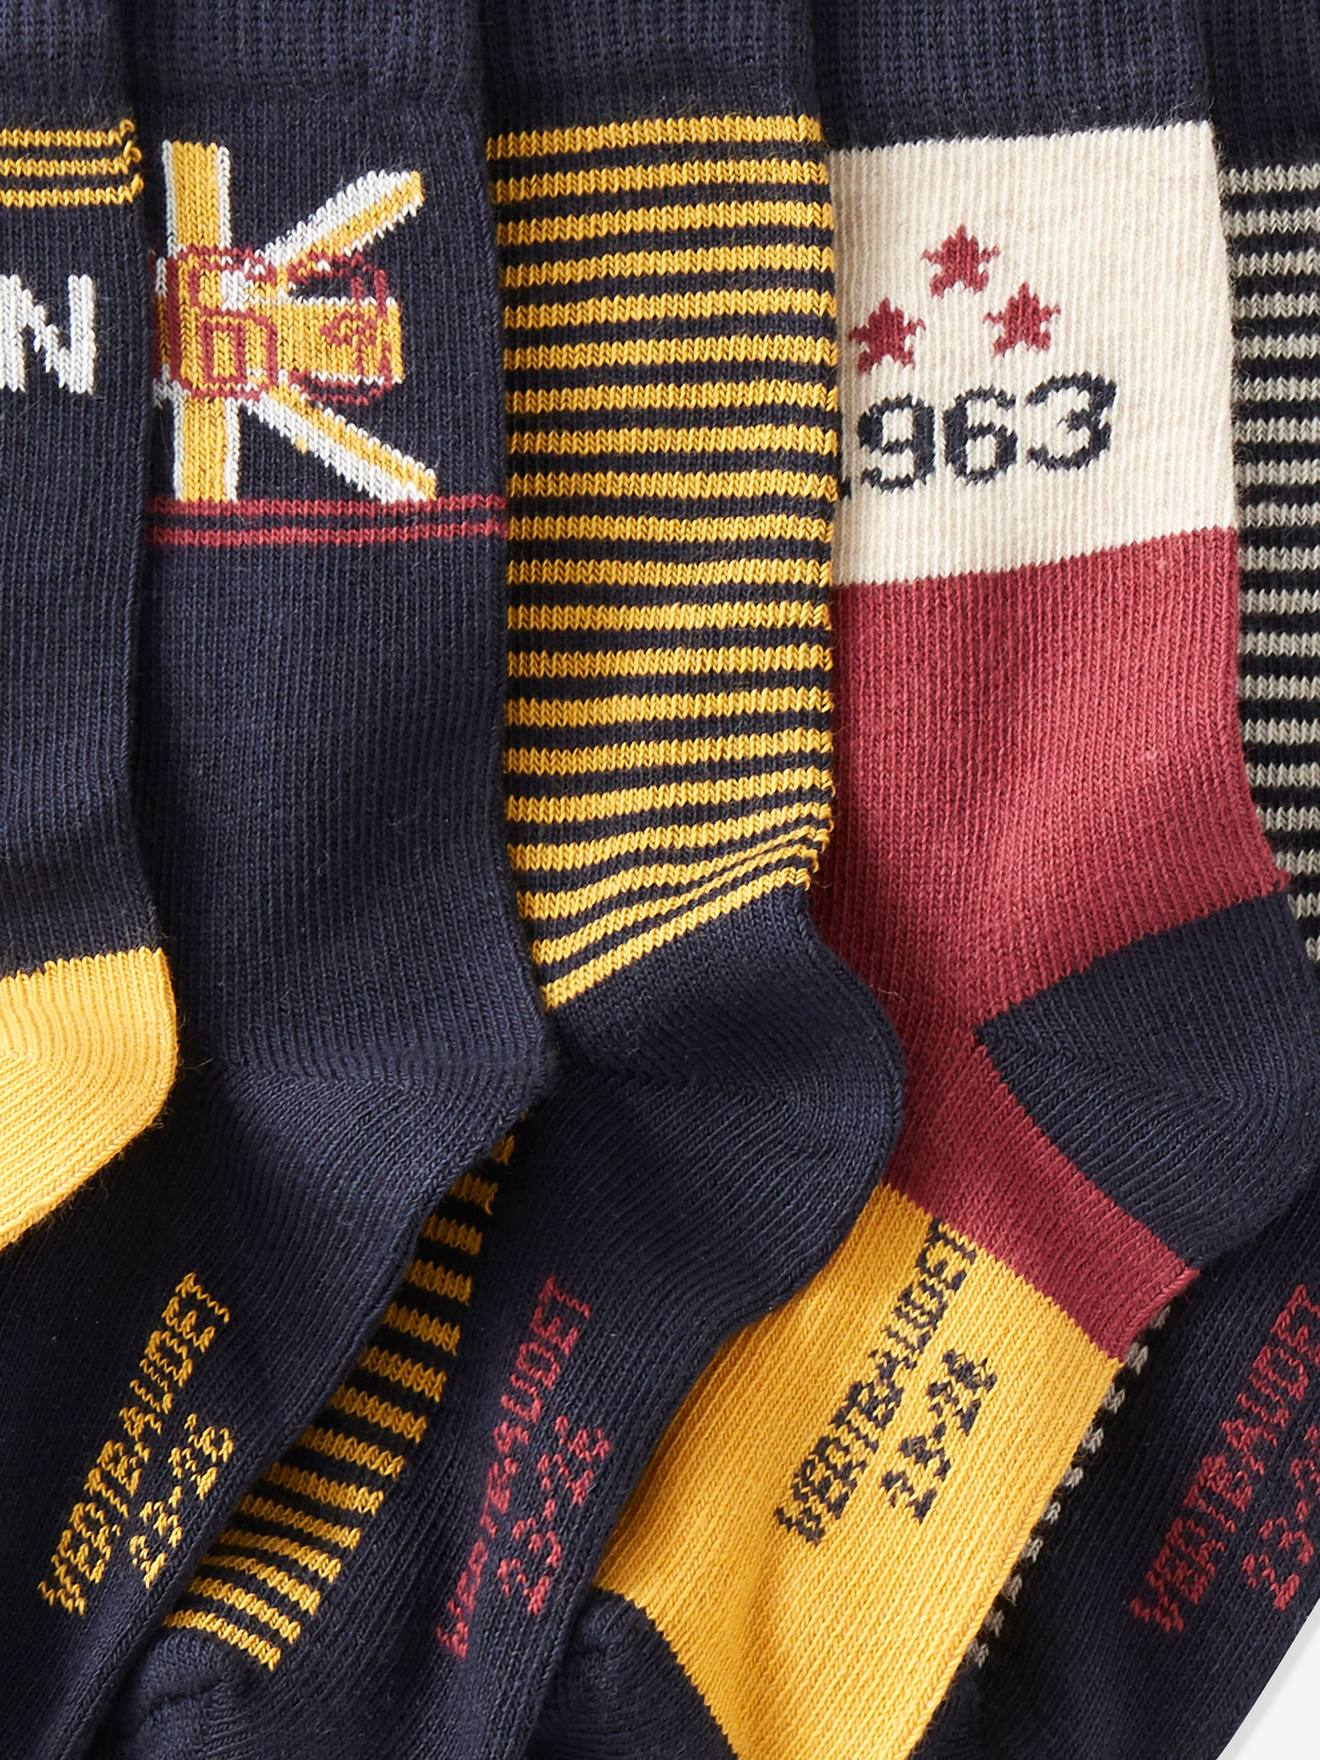 Site officiel Lot de 5 paires de mi-chaussettes garçon London lot jaune épicé pwcqE